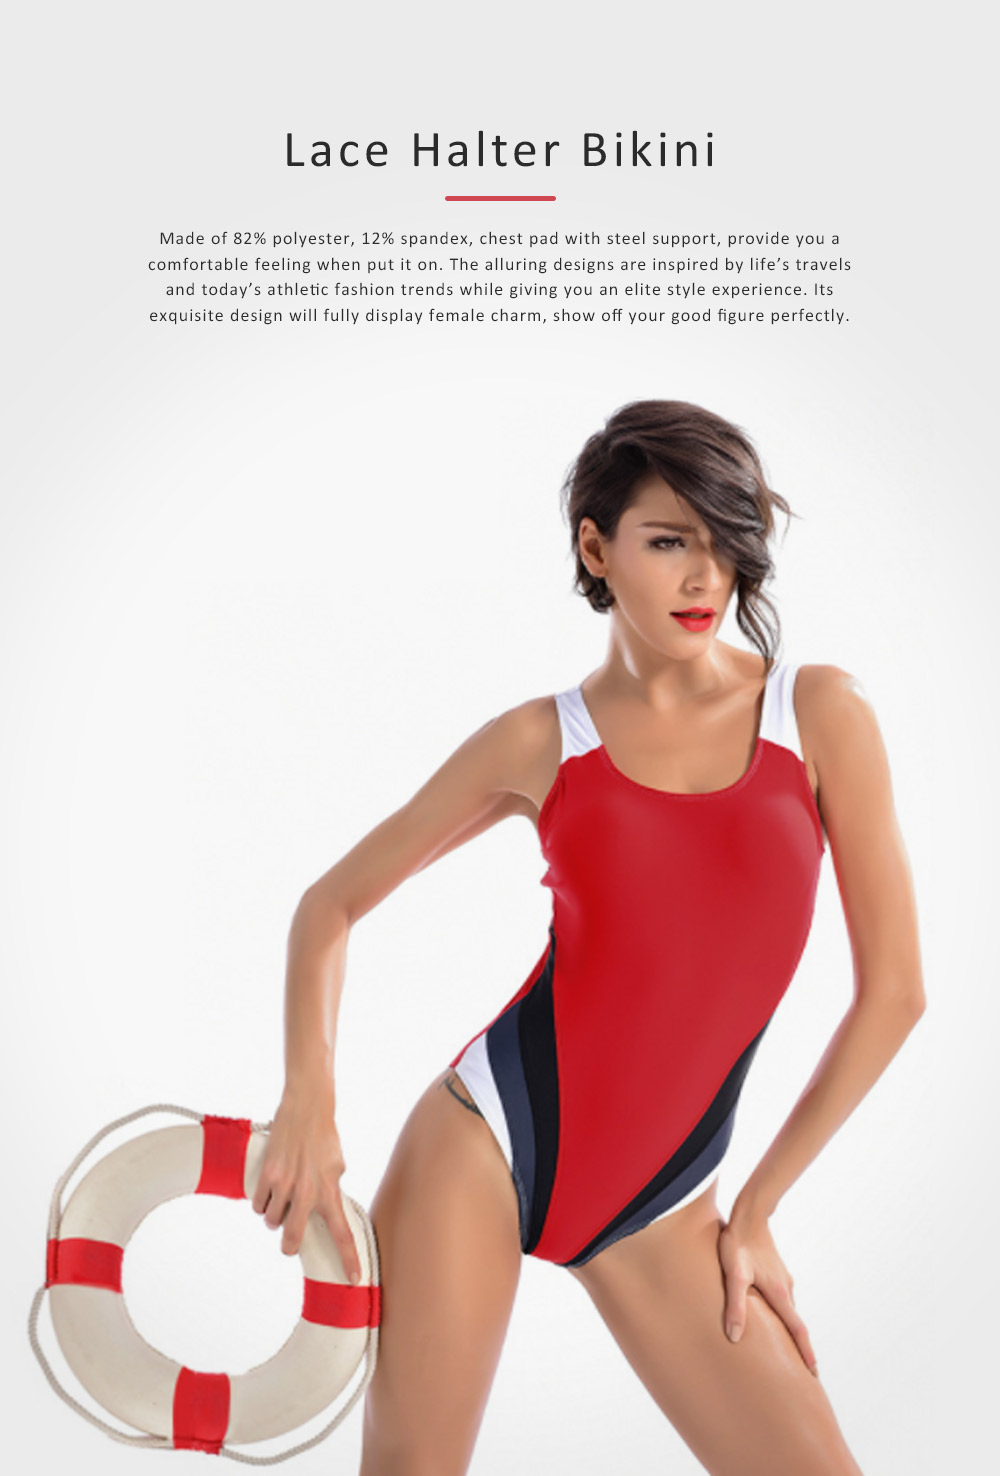 One-piece Women Swimsuit for Beach, Swimming Pool, Constrast Color Backless Swimwear 0